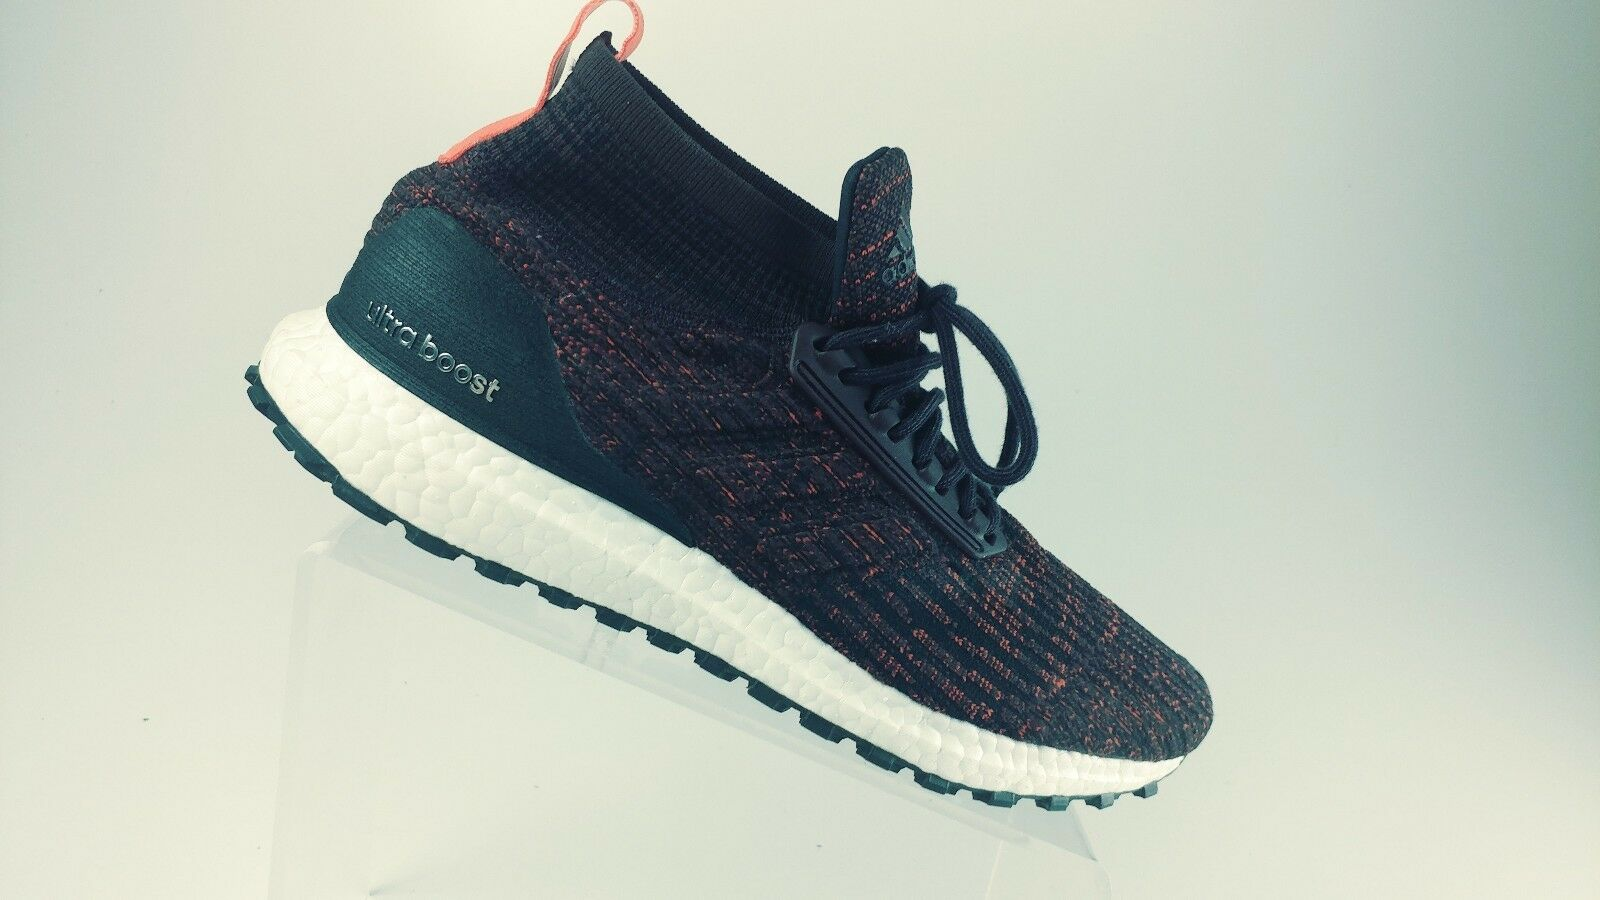 691a291f9 Adidas Ultra Boost All Terrain Mid Burgundy Size 9 ATR S82035  znmjws4296-Athletic Shoes